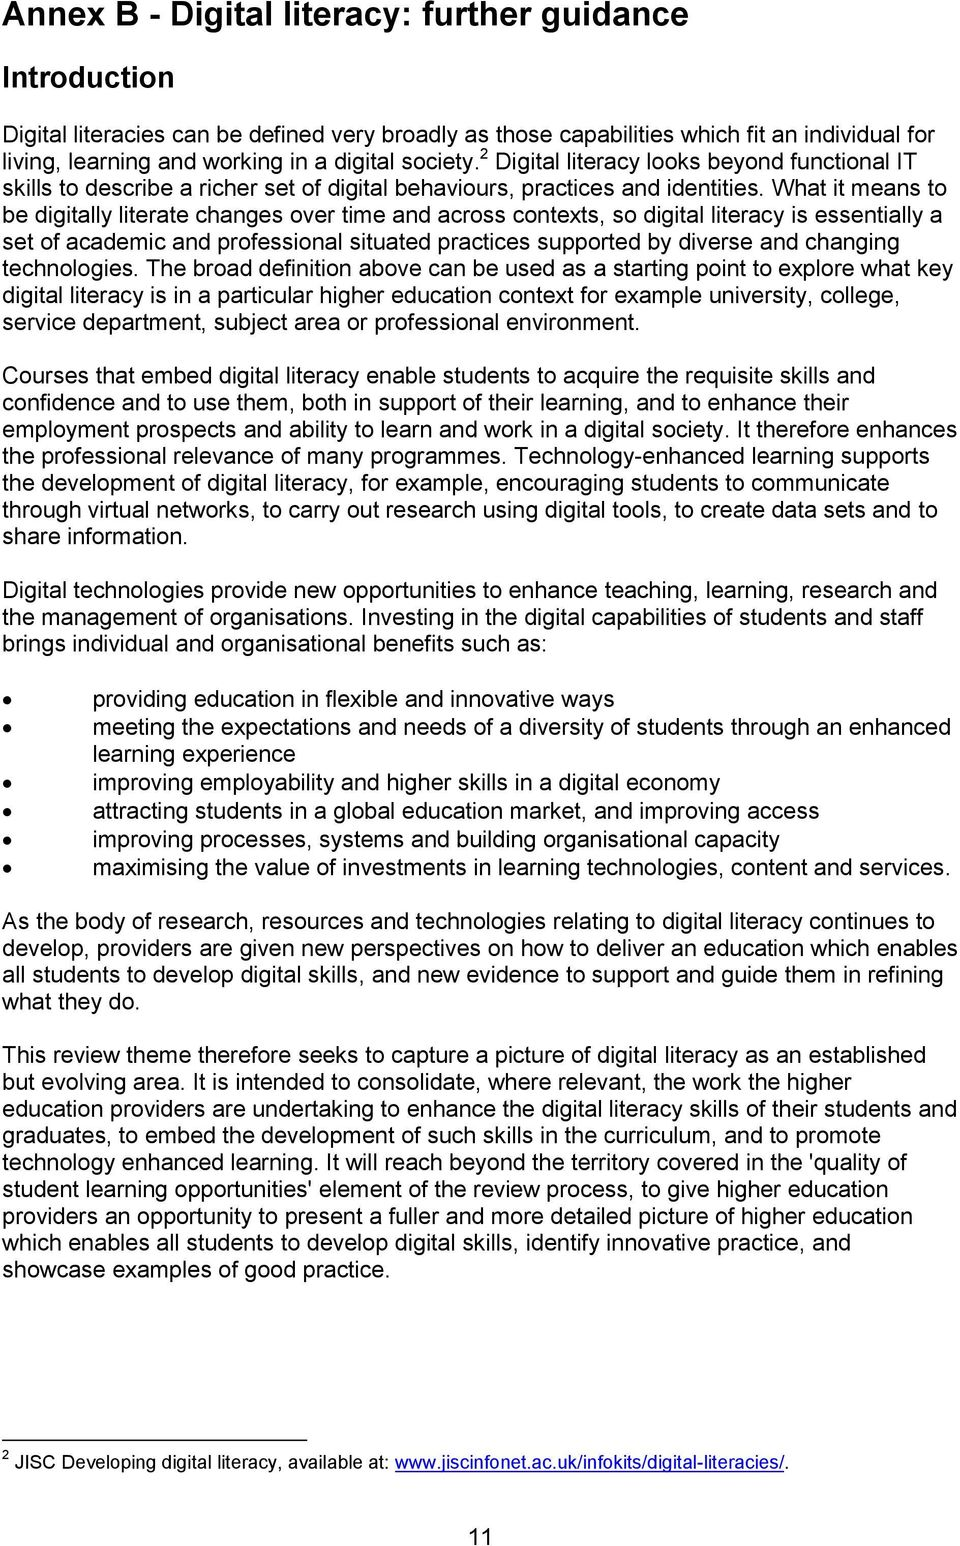 What it means to be digitally literate changes over time and across contexts, so digital literacy is essentially a set of academic and professional situated practices supported by diverse and